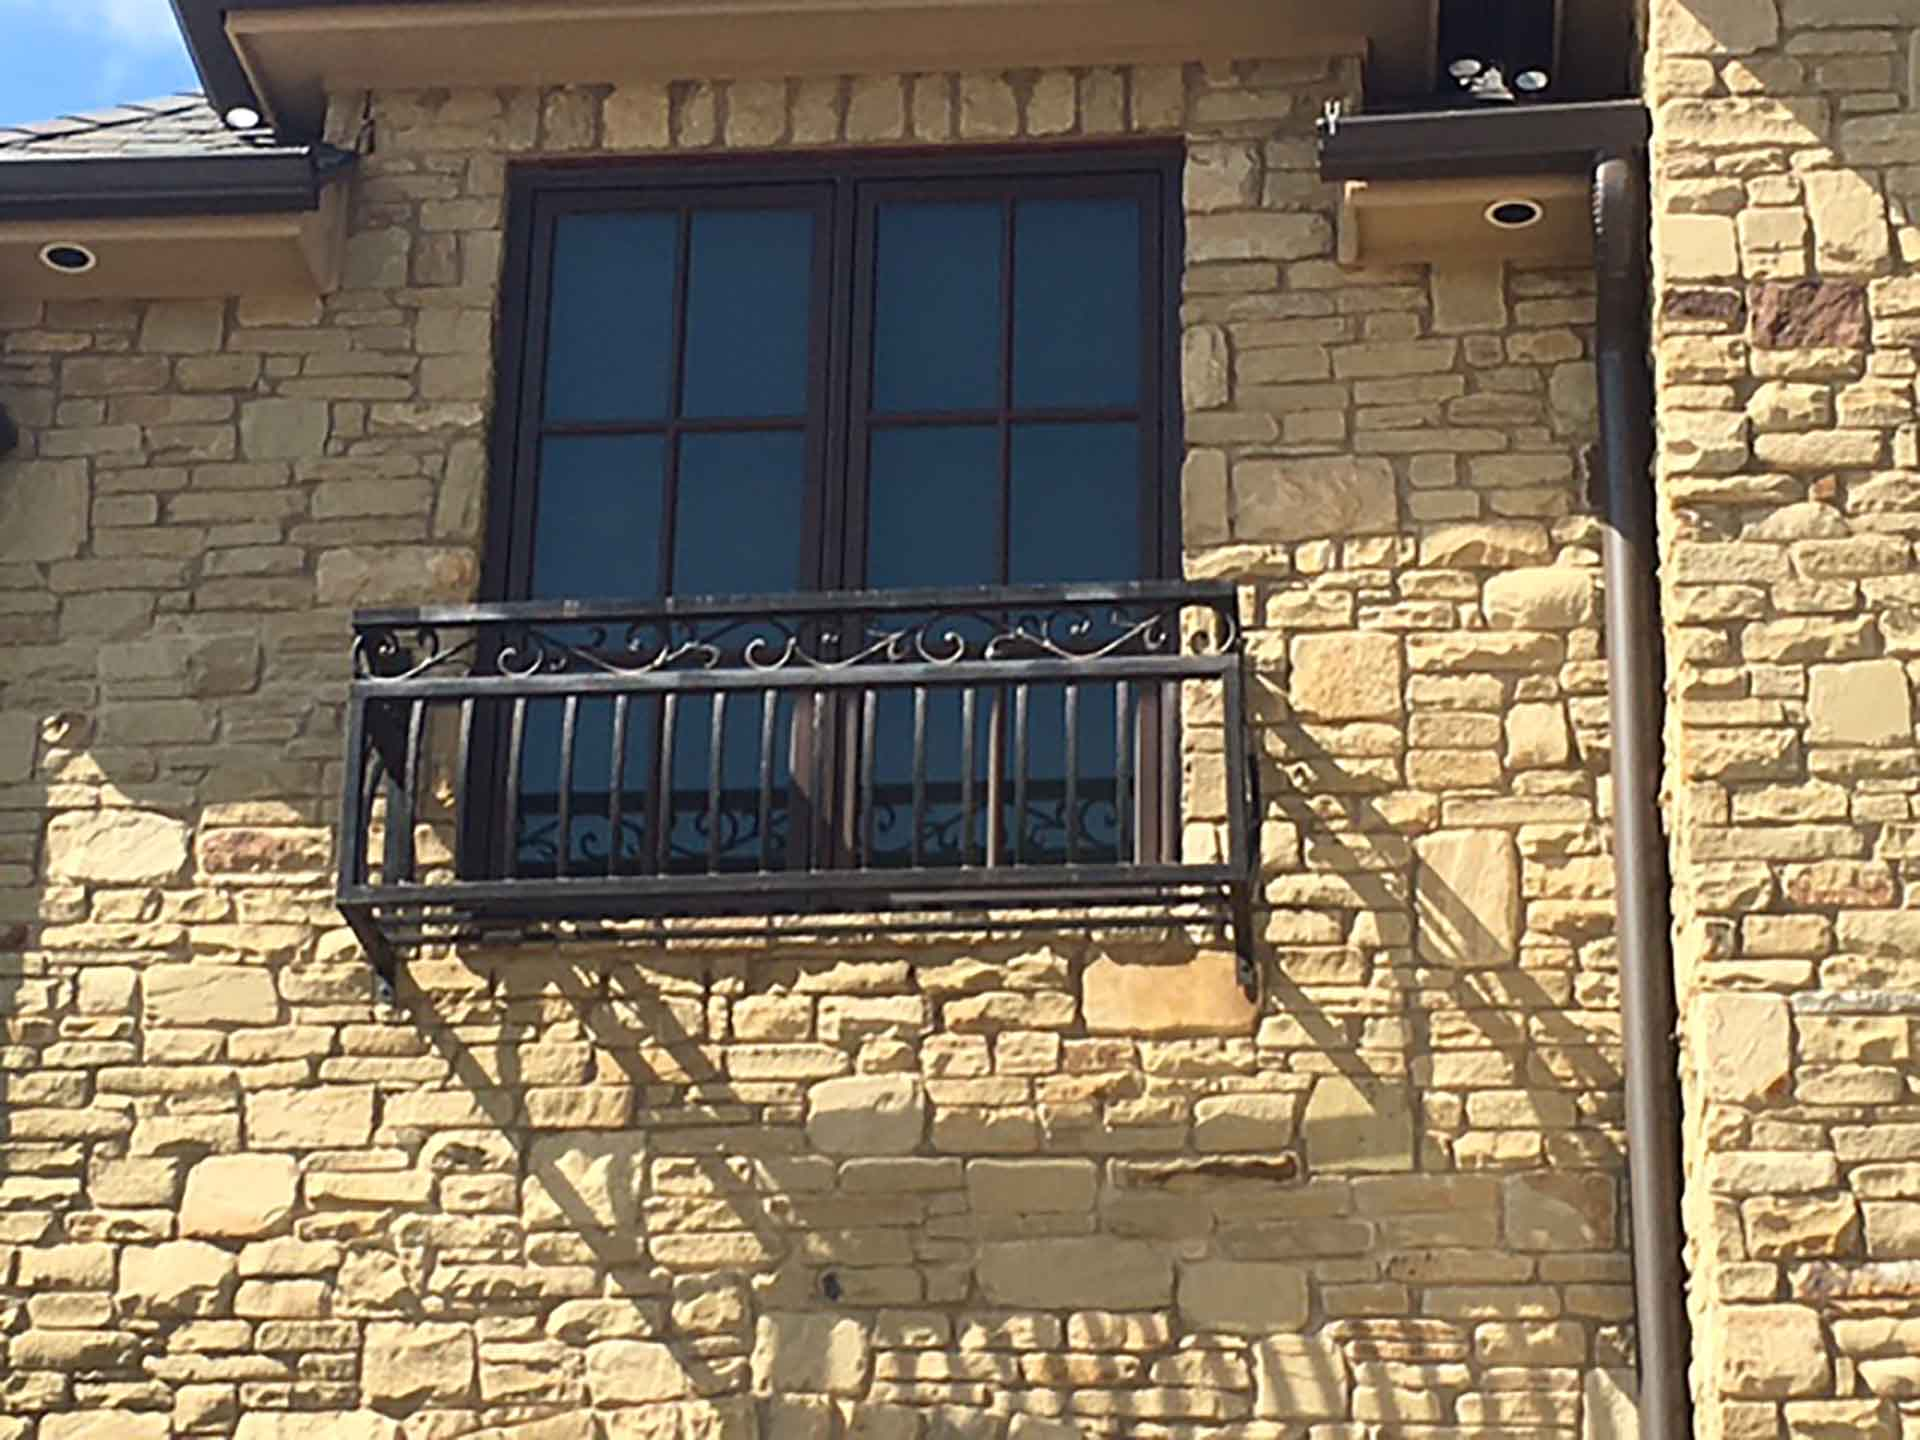 oklahoma's #1 maker of wrought iron railing, iron fence, metal stairs railing, rod iron fence, wrought iron, wrought iron fence, wrought iron gate, wrought iron rails, wrought iron stair rails, stair rails, handrail, wall rail, stair handrail, wrought iron railing, metal stair railing, modern stair railing, decorative iron gate, ornamental iron stair rail, and modern stair rail